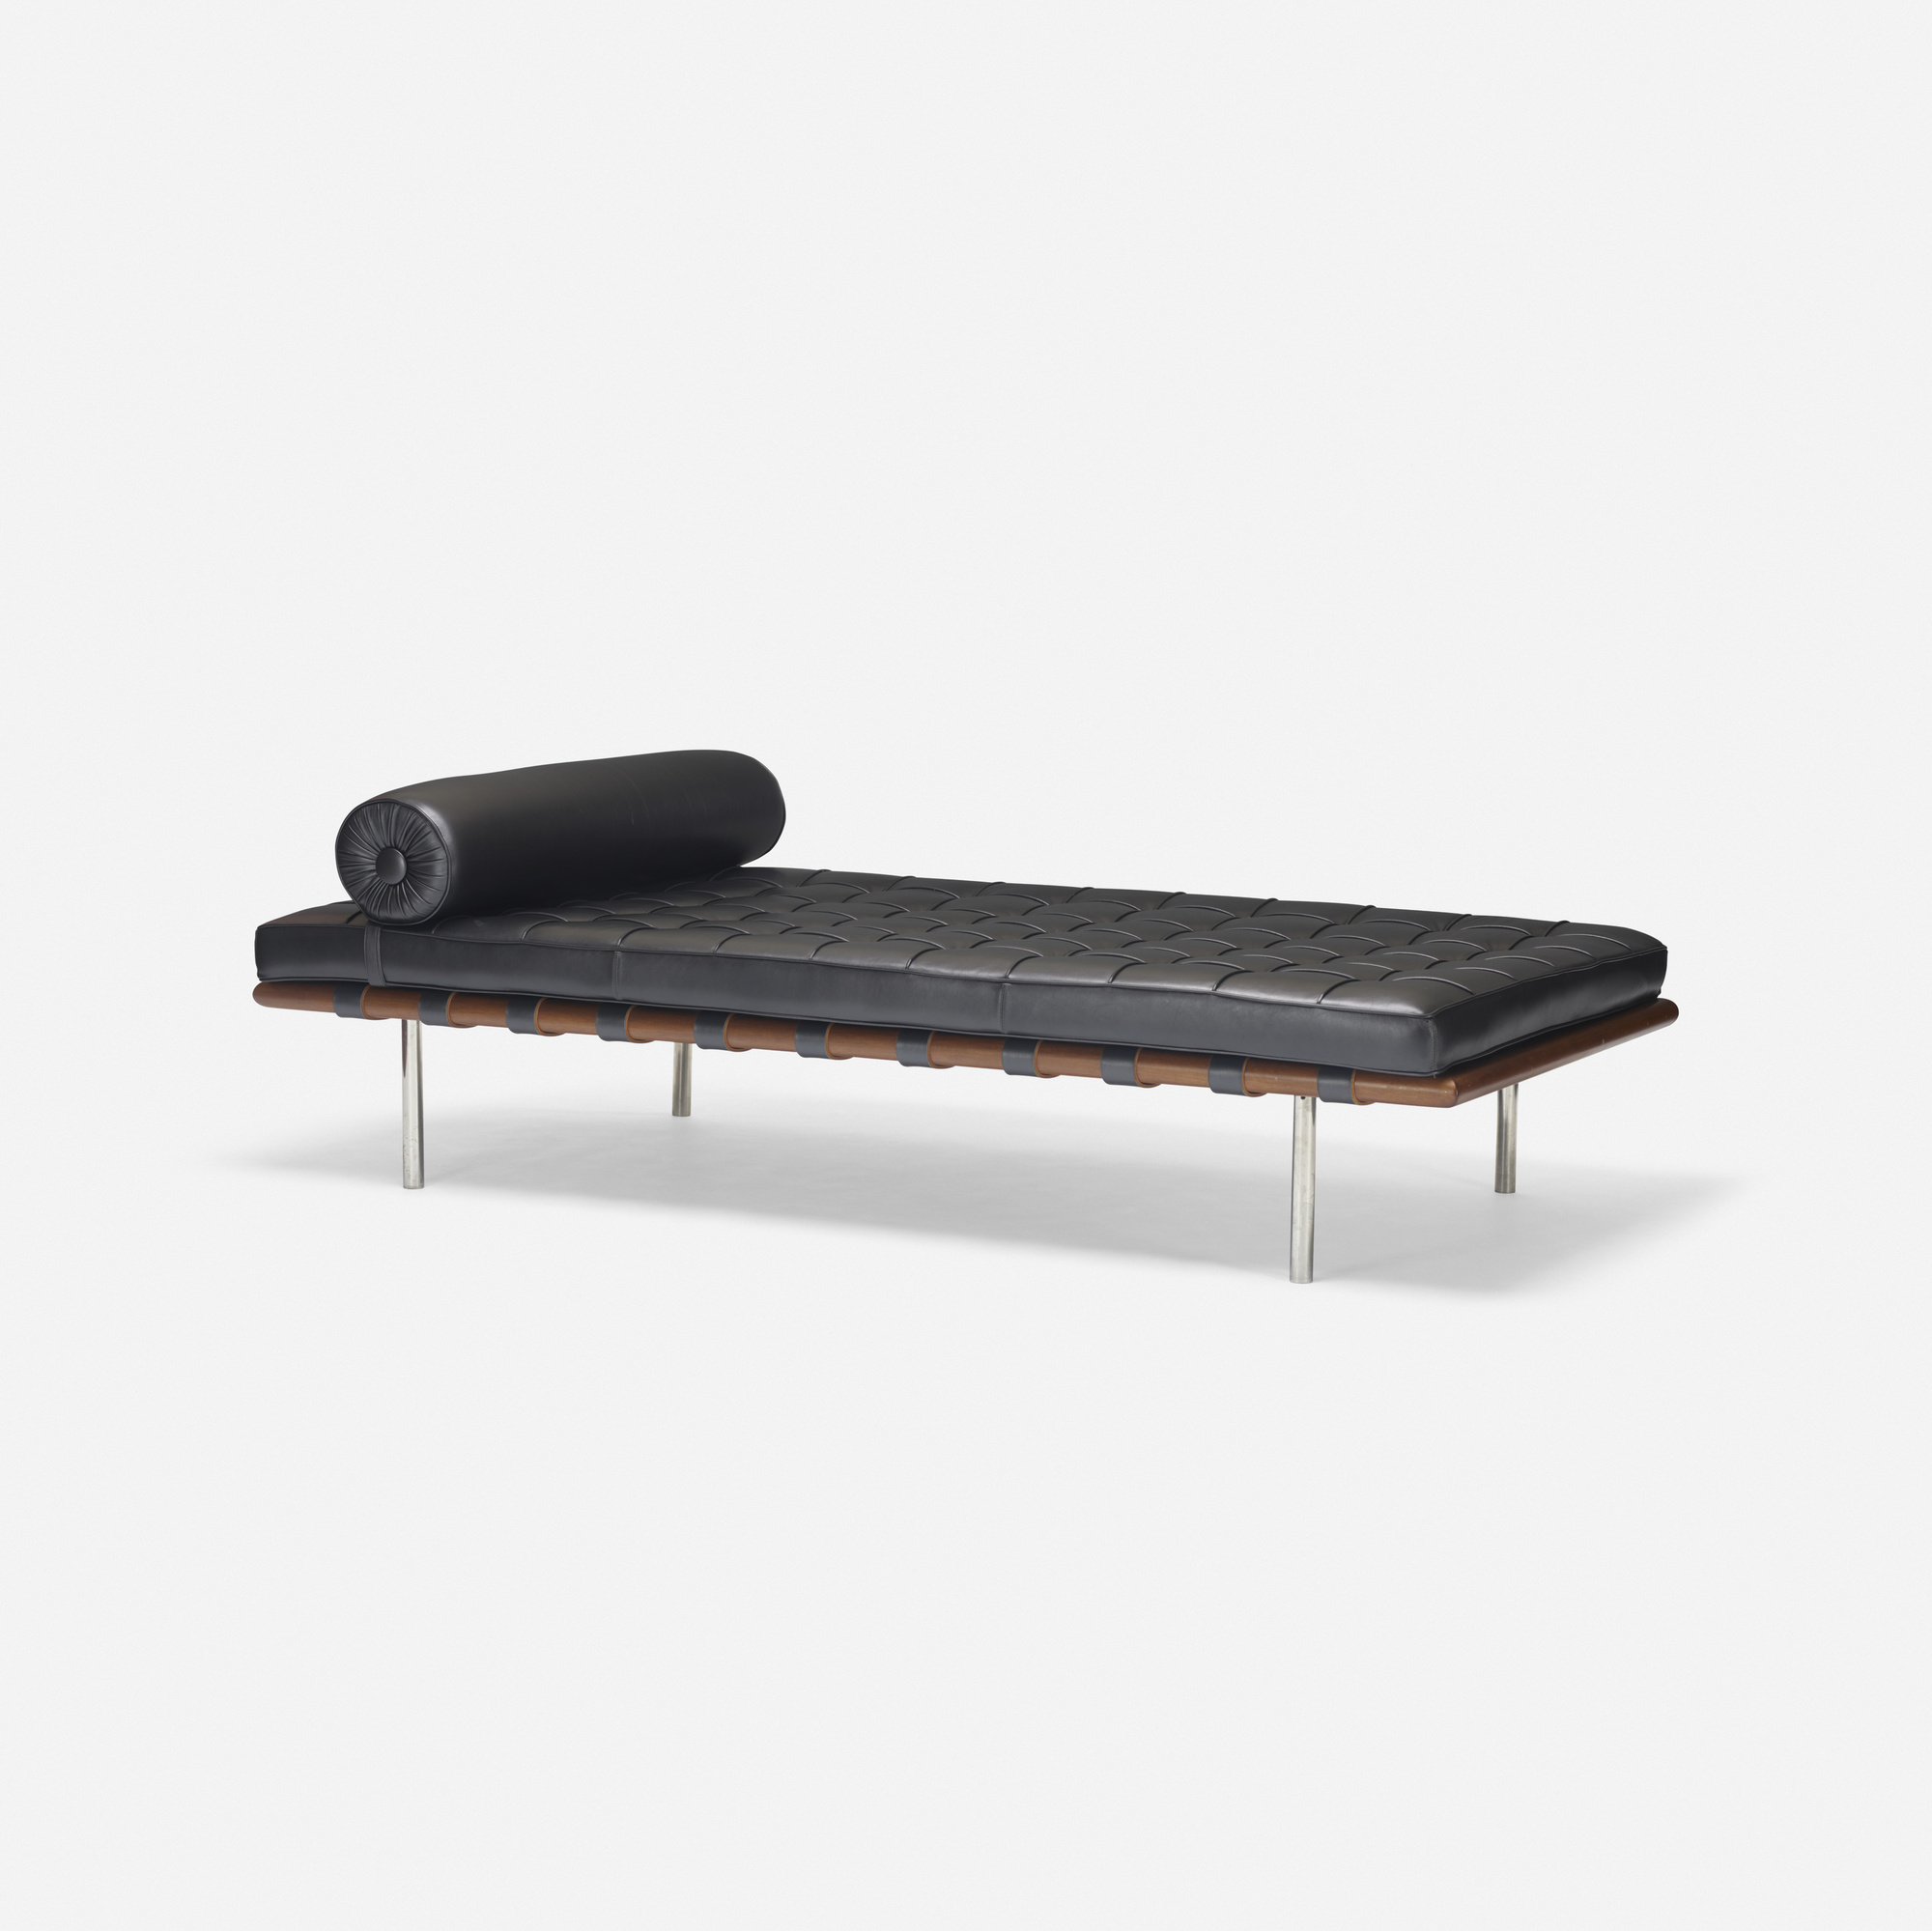 414: Ludwig Mies van der Rohe / Barcelona daybed (2 of 2)